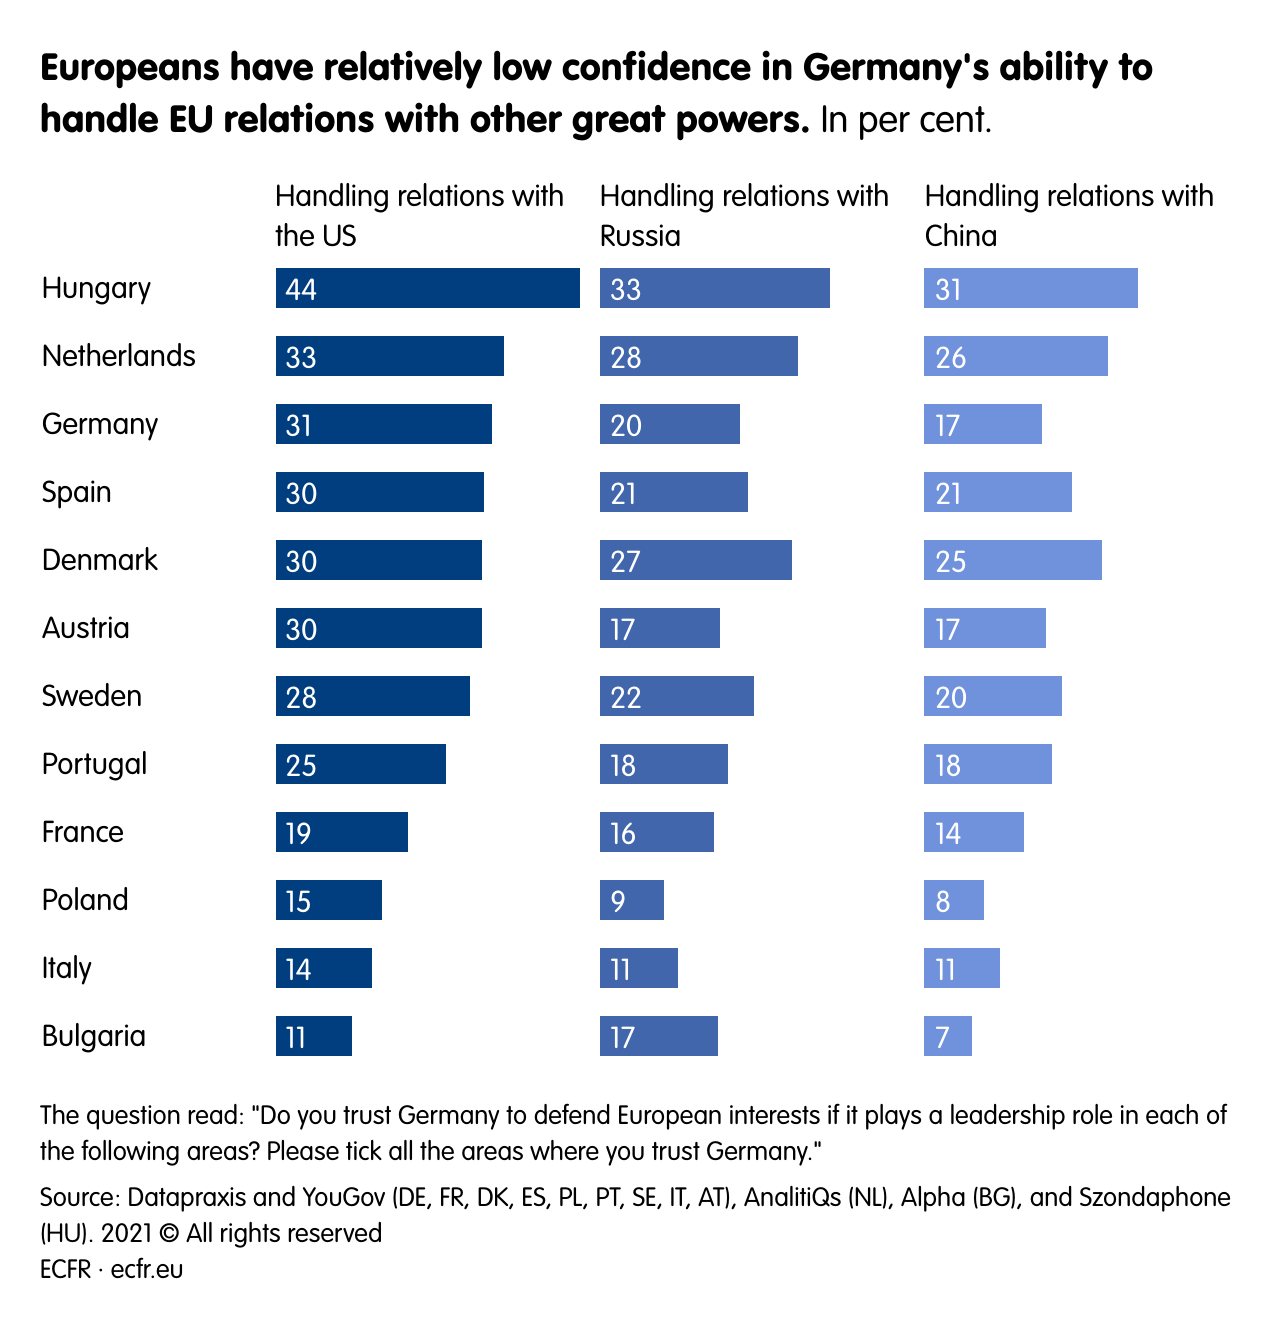 Europeans have relatively low confidence in Germany's ability to handle EU relations with other great powers.